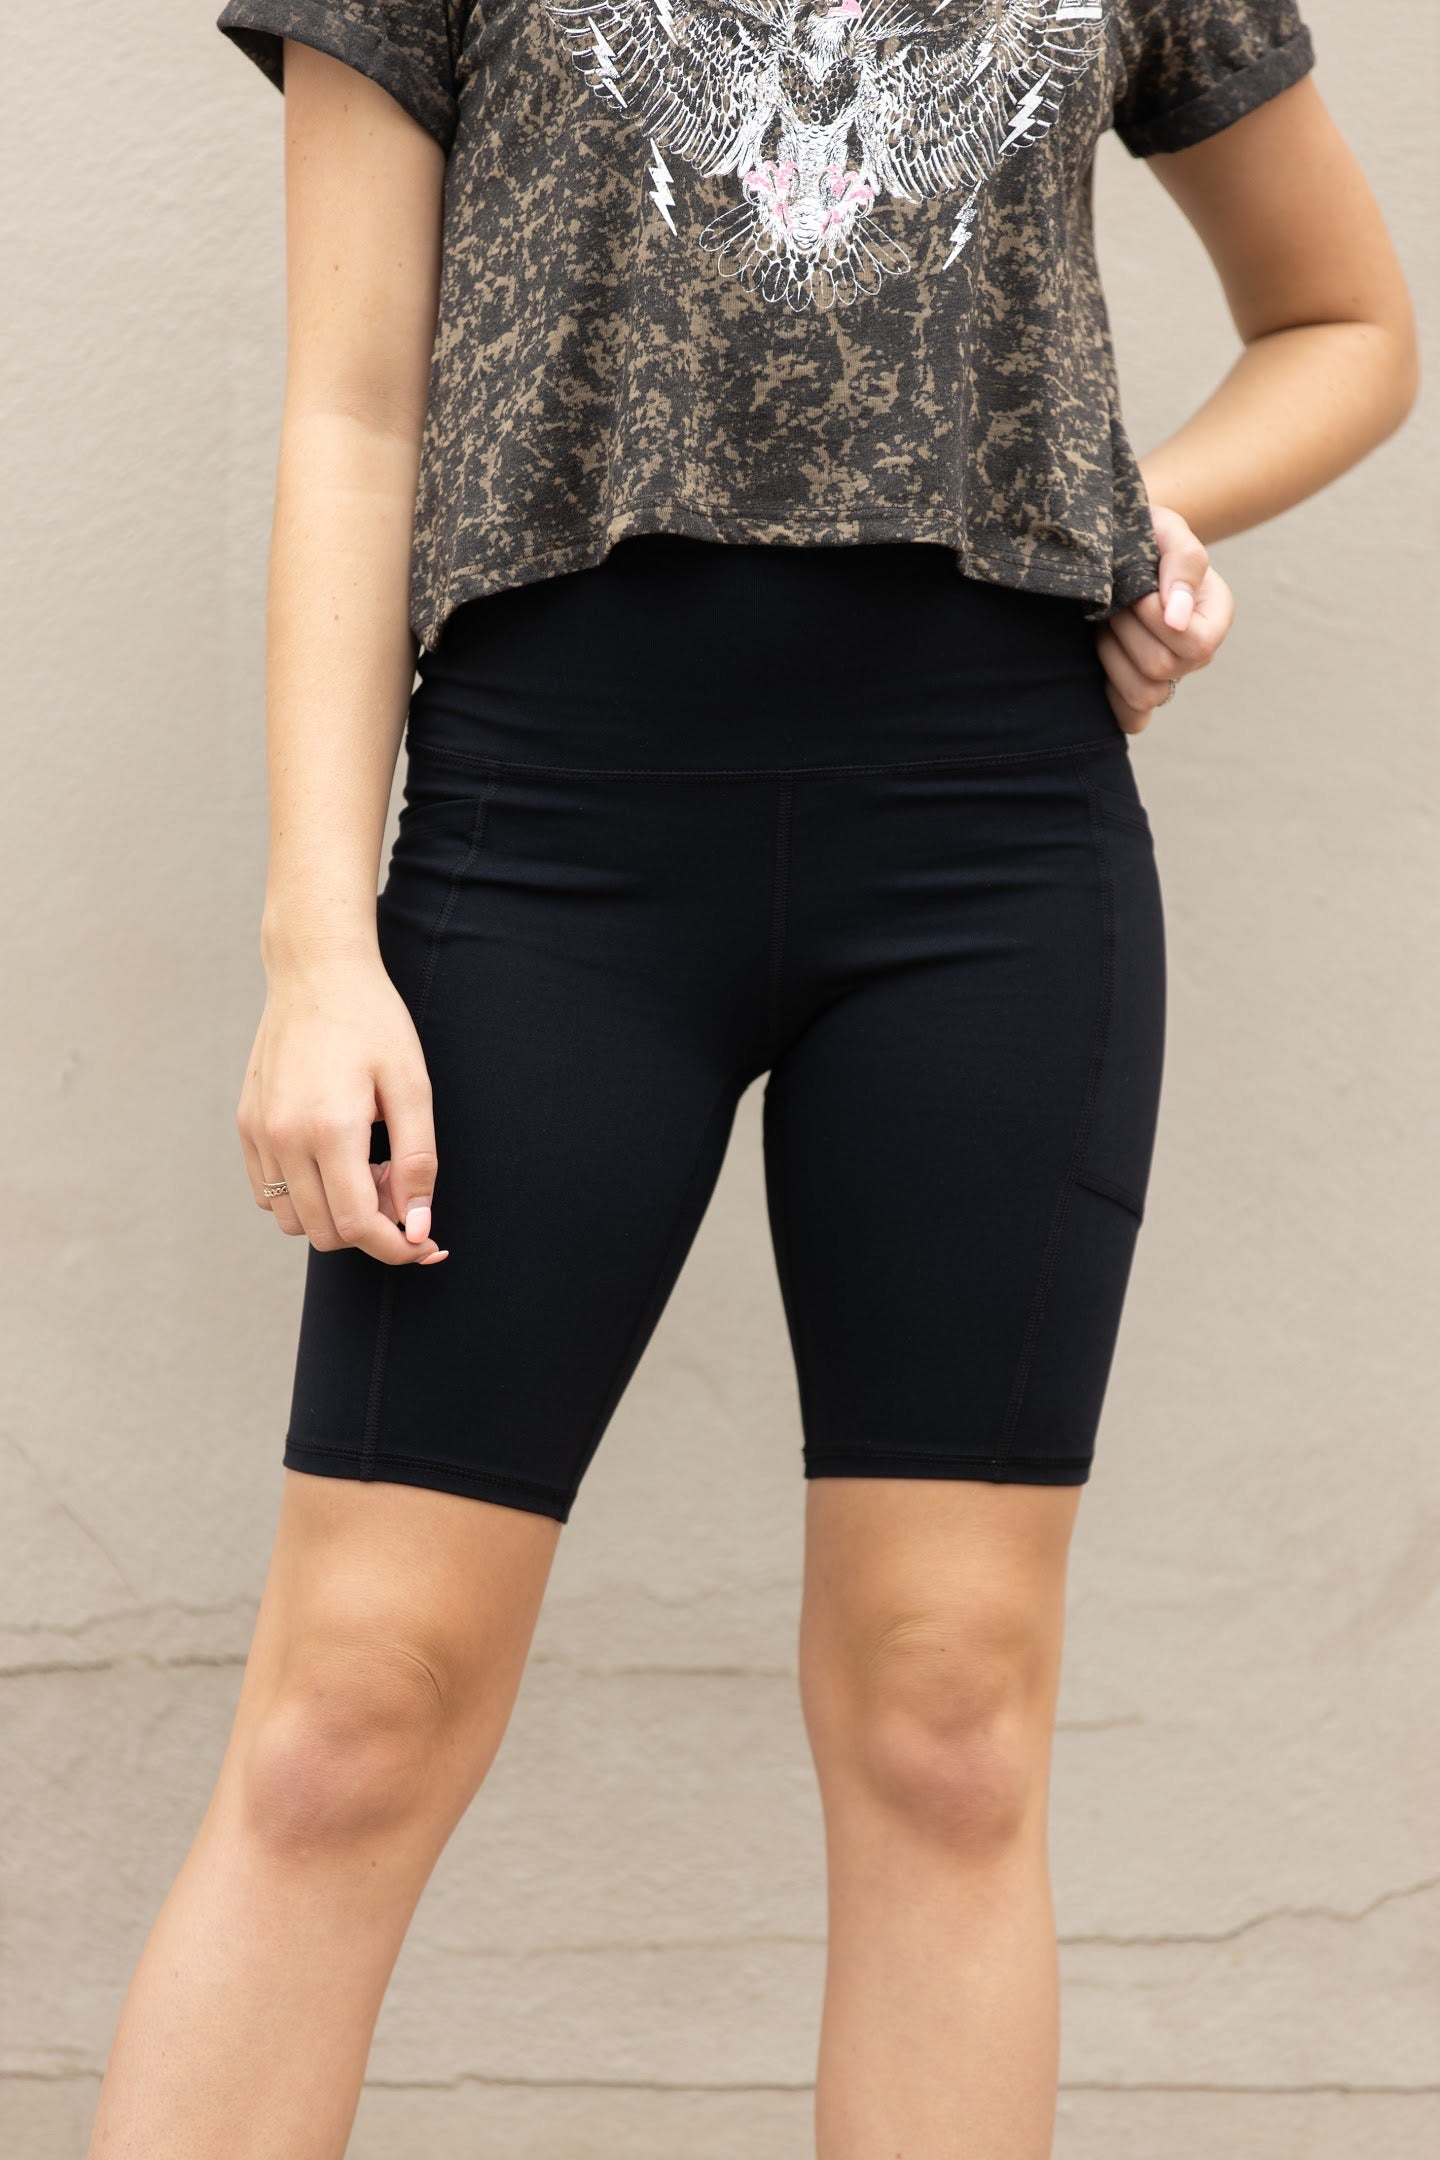 Move With Me Black Biker Shorts